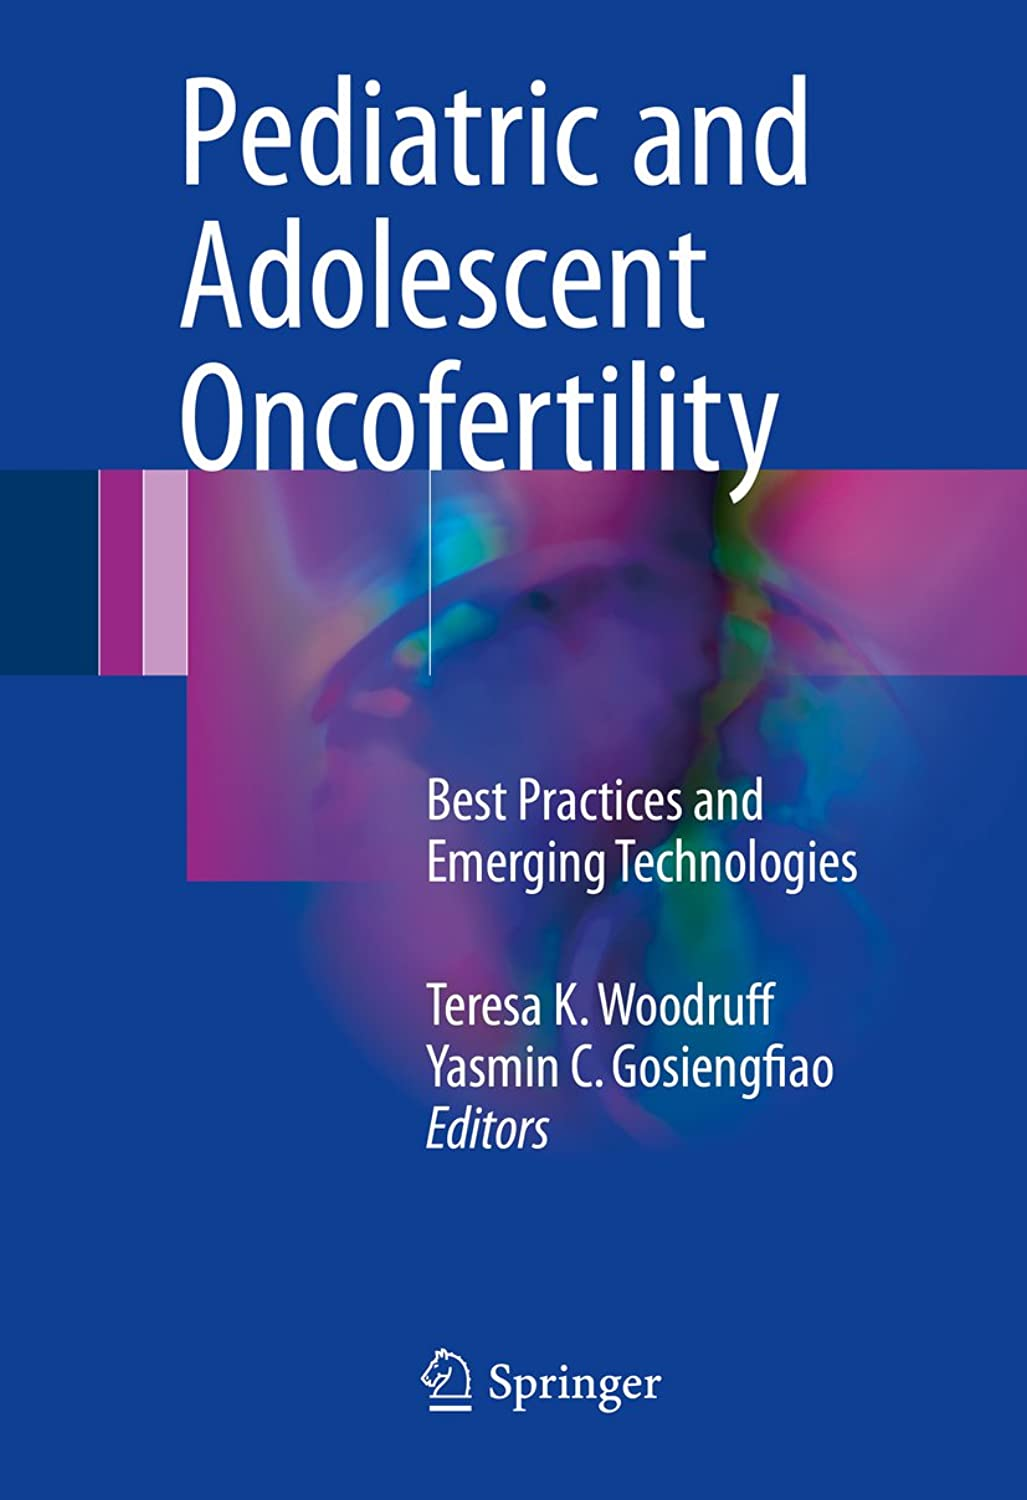 偶然のフットボールすり減るPediatric and Adolescent Oncofertility: Best Practices and Emerging Technologies (English Edition)